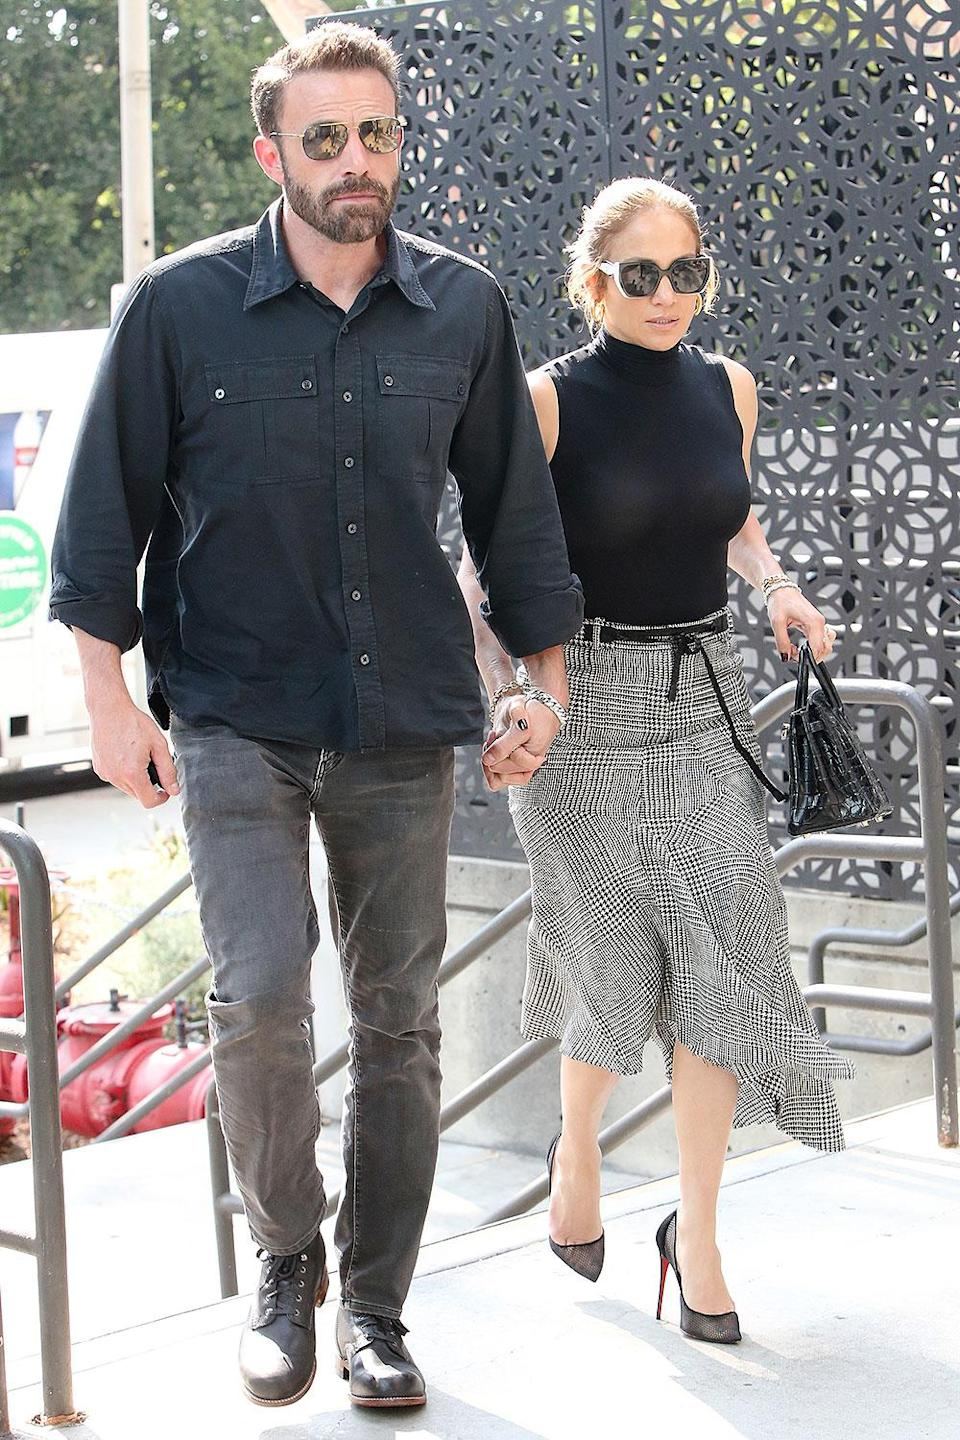 """<p>Just a few days after Affleck was spotted at Tiffany & Co. in the Westfield Century City Mall in Los Angeles, the couple <a href=""""https://people.com/movies/ben-affleck-and-jennifer-lopez-color-coordinate-during-mall-outing/"""" rel=""""nofollow noopener"""" target=""""_blank"""" data-ylk=""""slk:color-coordinated their outfits"""" class=""""link rapid-noclick-resp"""">color-coordinated their outfits</a> for a return trip to the same shopping center on Aug. 24. </p>"""